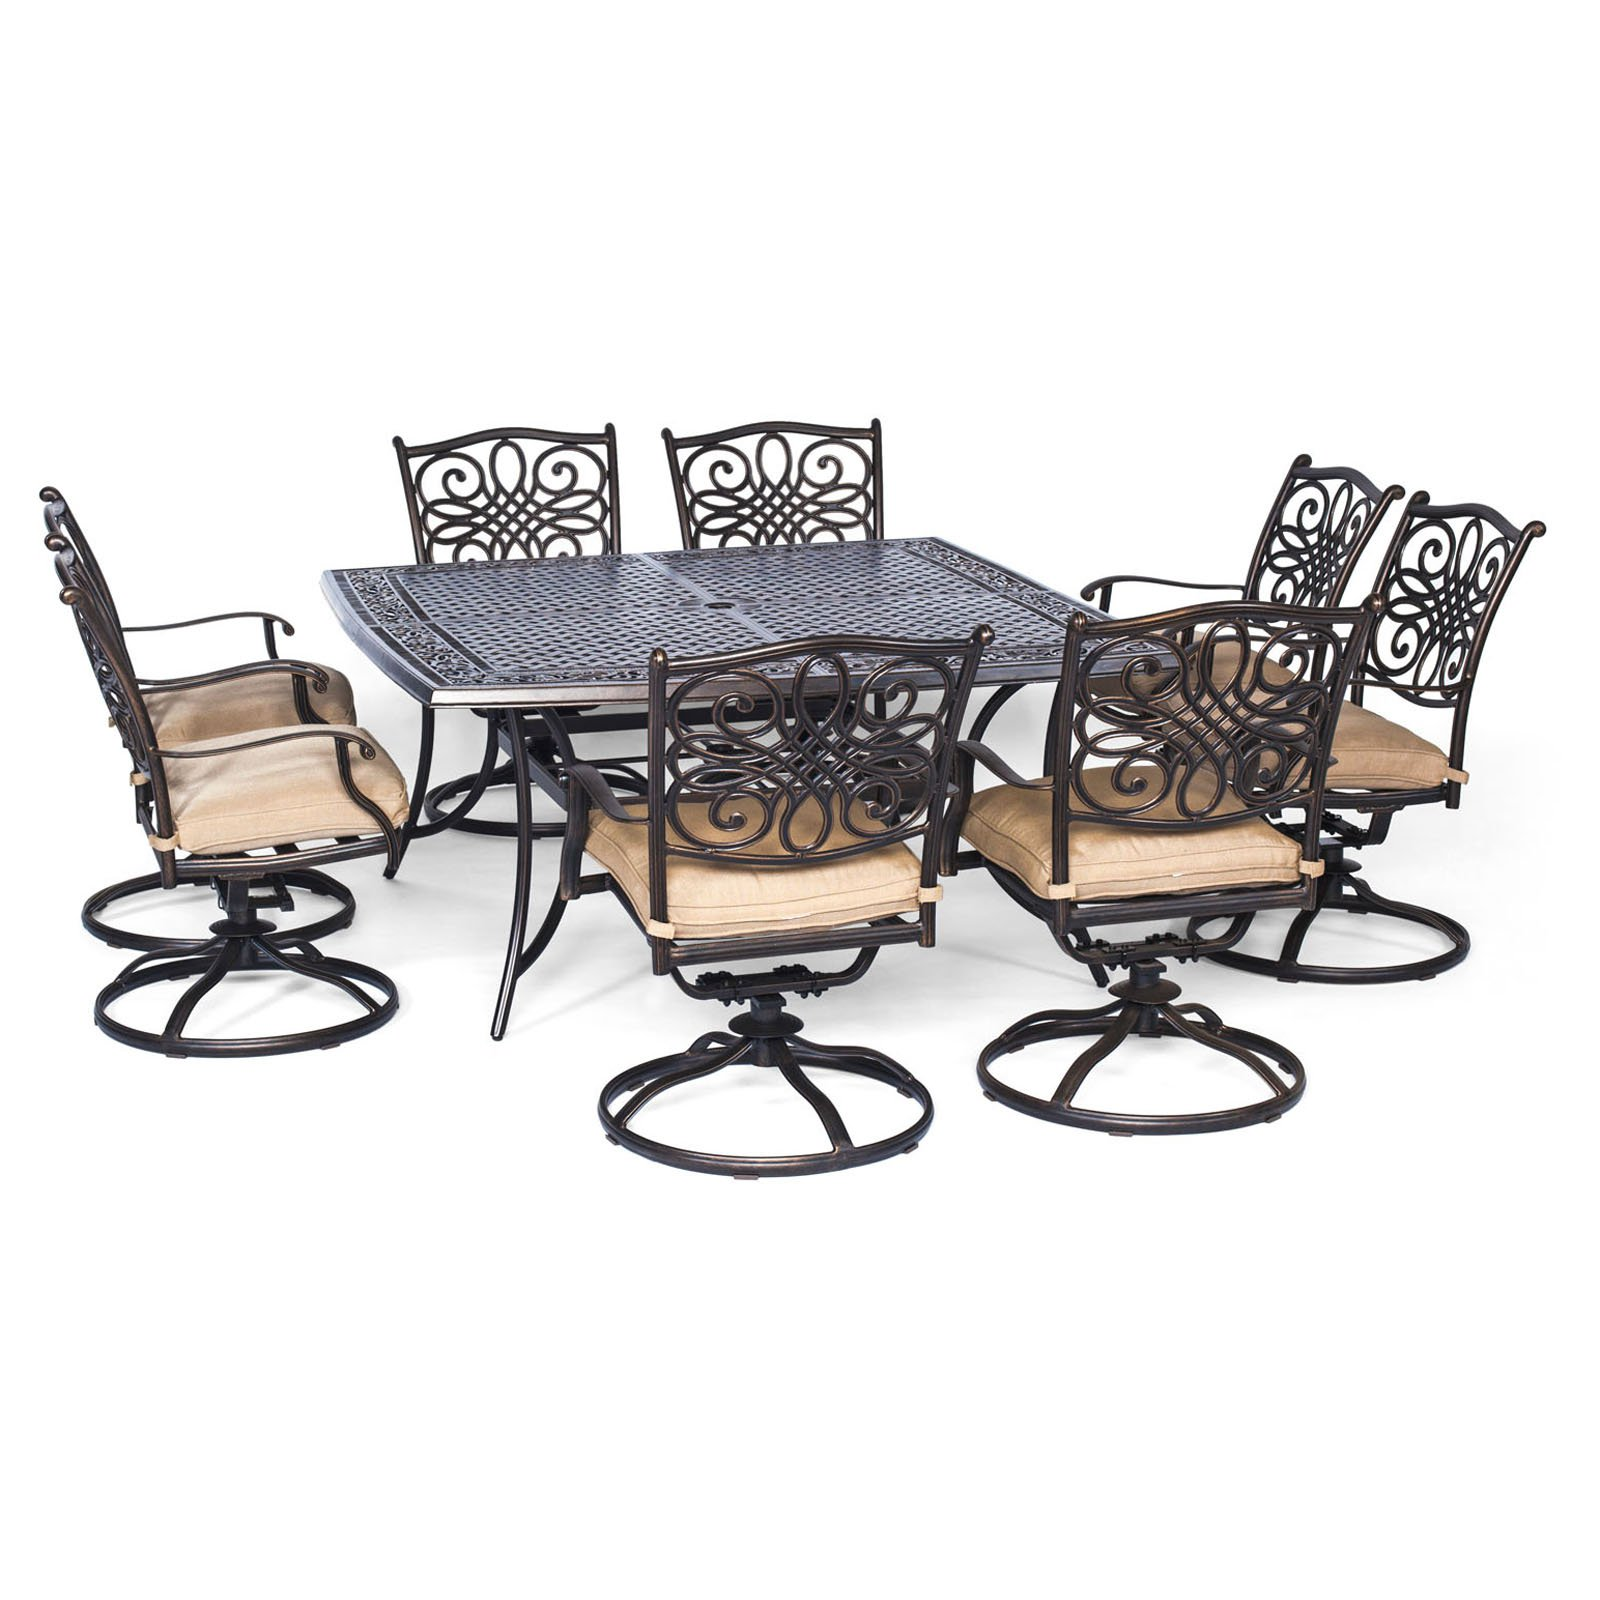 swivel rocker outdoor dining chairs gold chair covers to rent hanover traditions 9 piece set with large square table and 8 rockers natural oat bronze walmart com